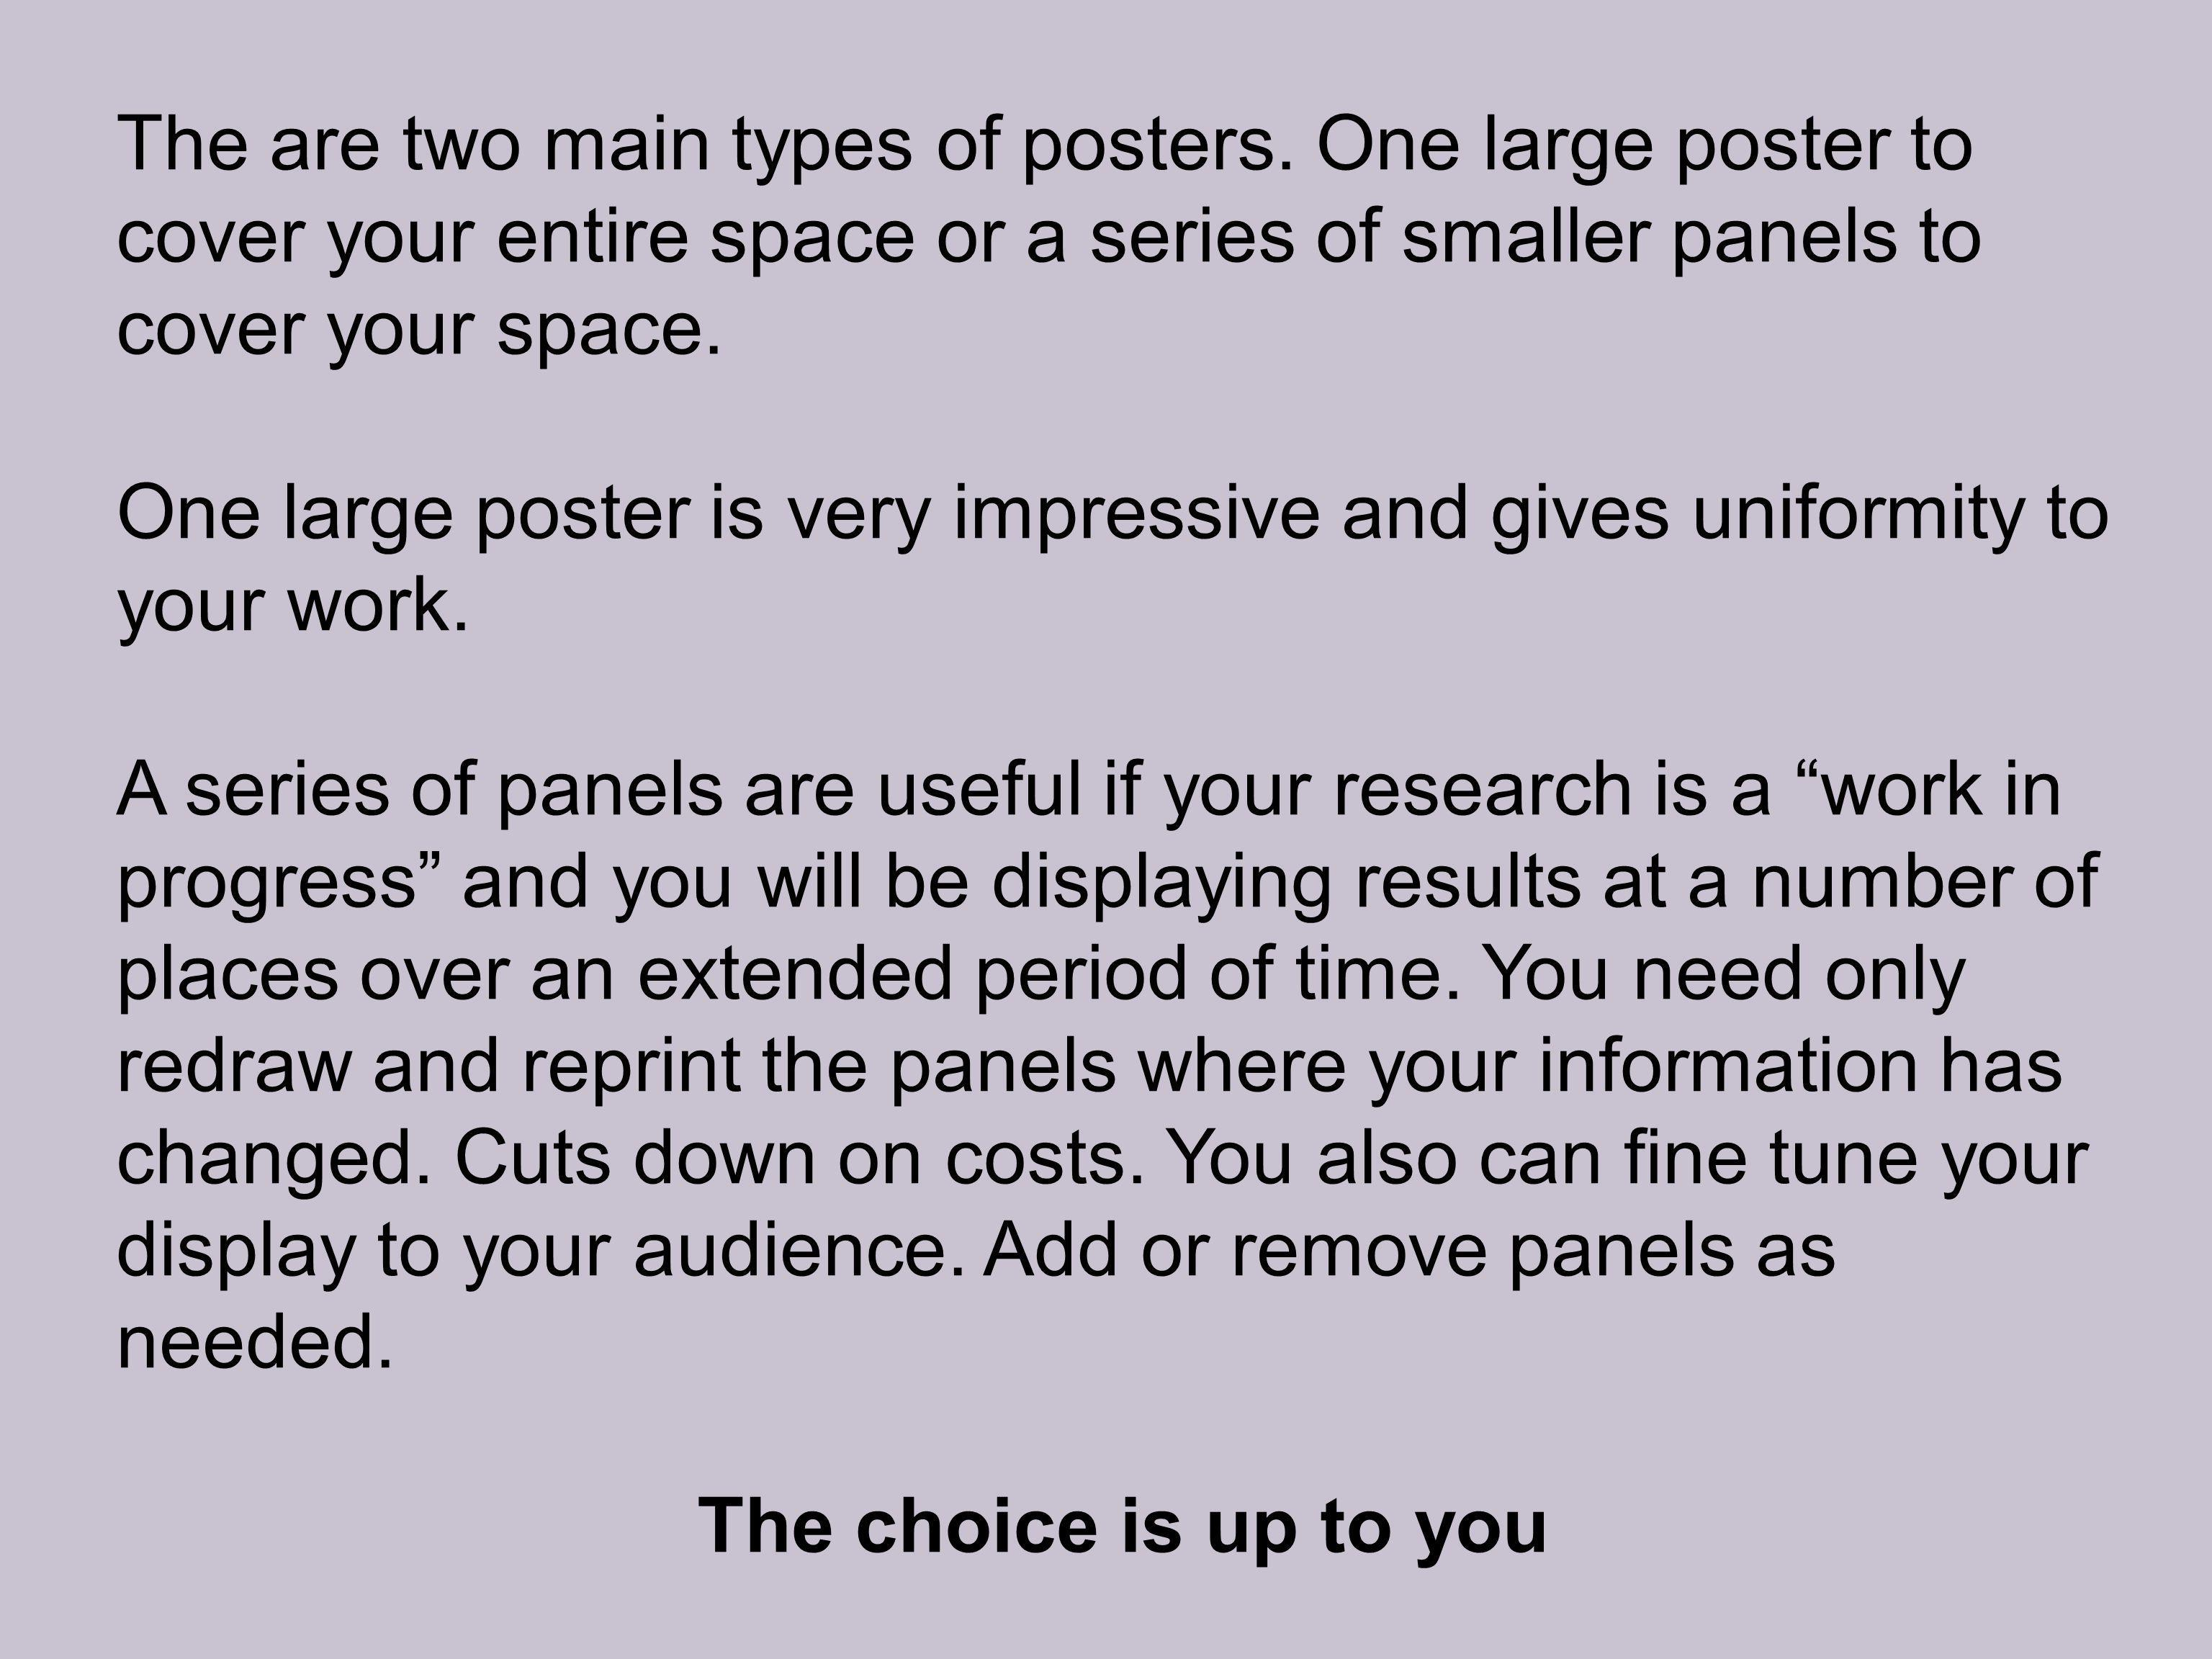 The are two main types of posters. One large poster to cover your entire space or a series of smaller panels to cover your space. One large poster is